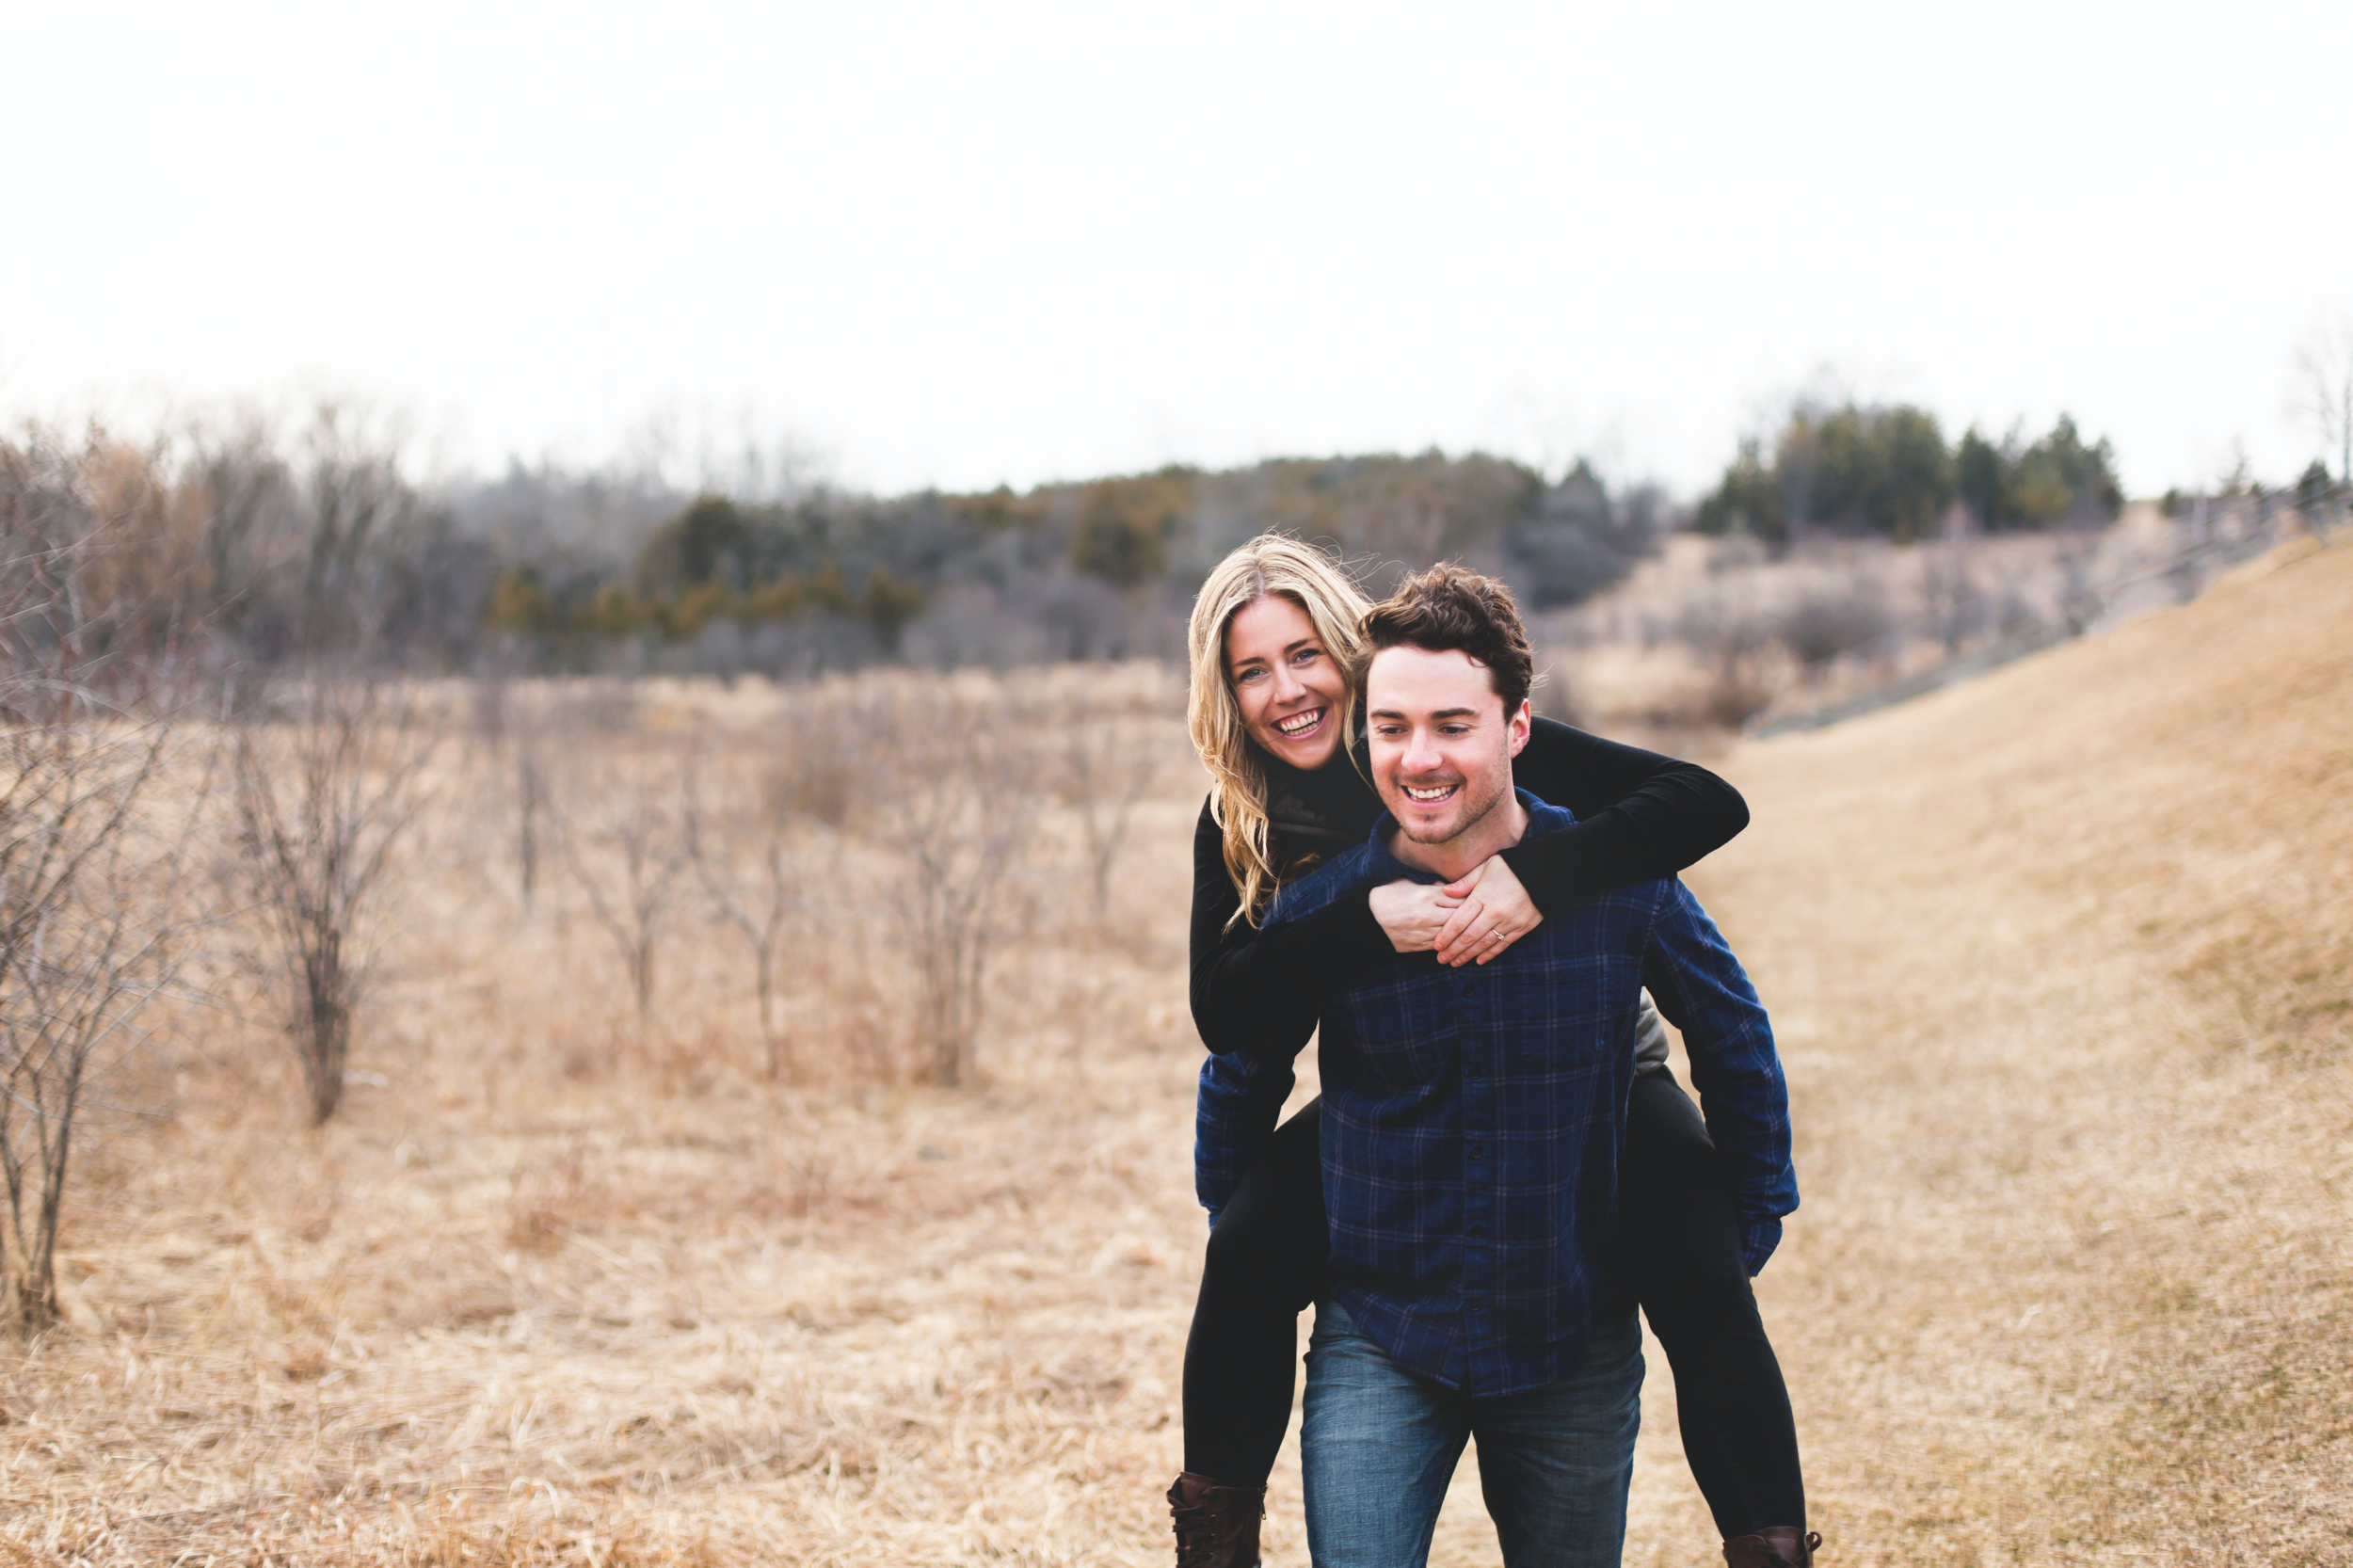 Engagement-Session-Photographer-Guelph-Lake-Hamilton-Toronto-Niagara-Photography-Moments-by-Lauren-Photo-Image-10.png